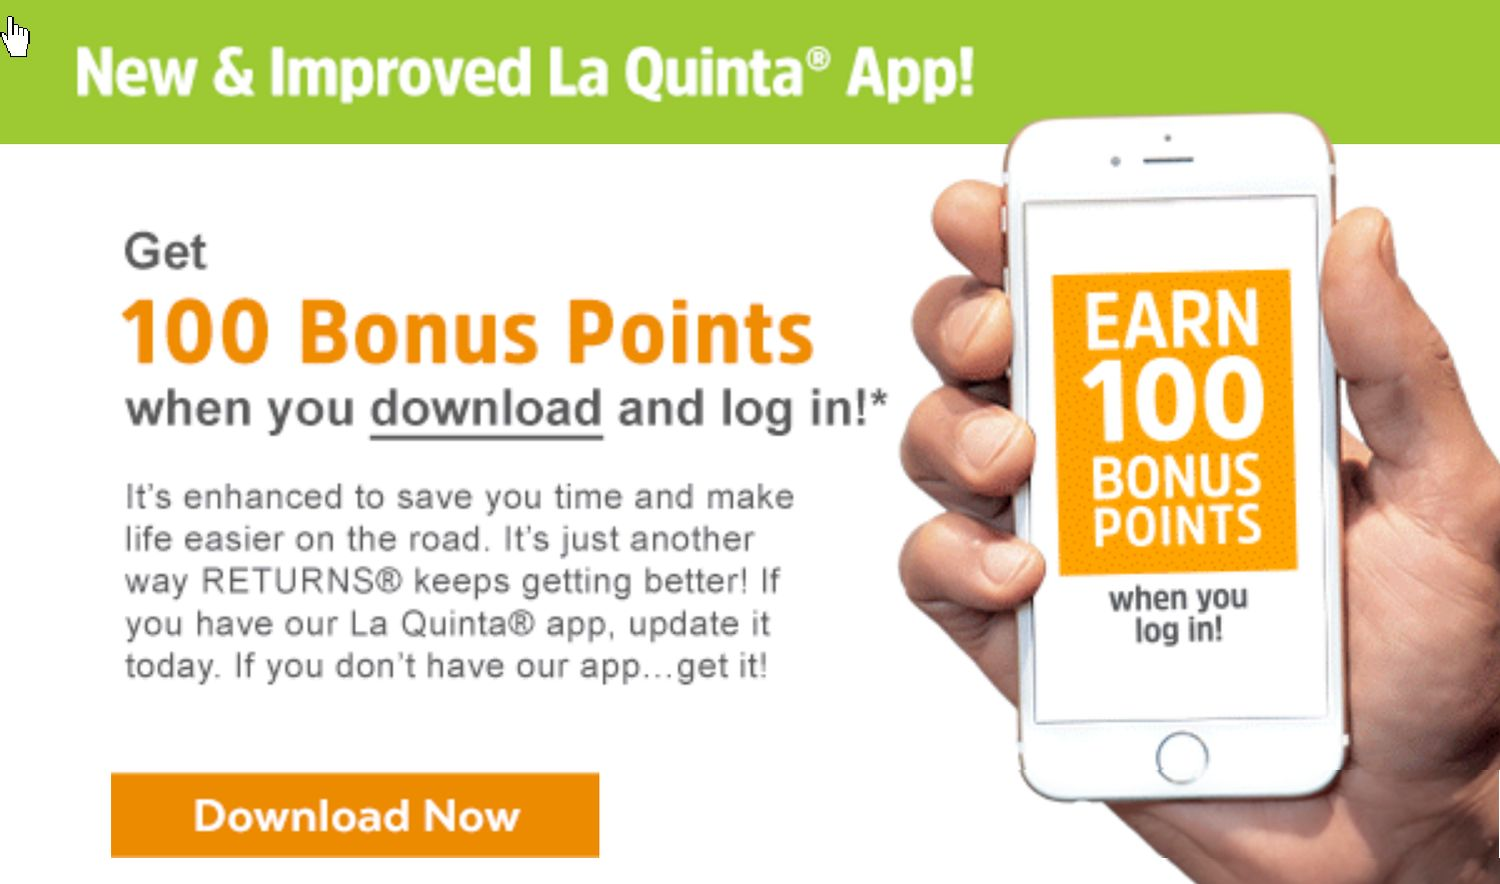 LaQuinta: Get 100 Free and Easy Bonus Points